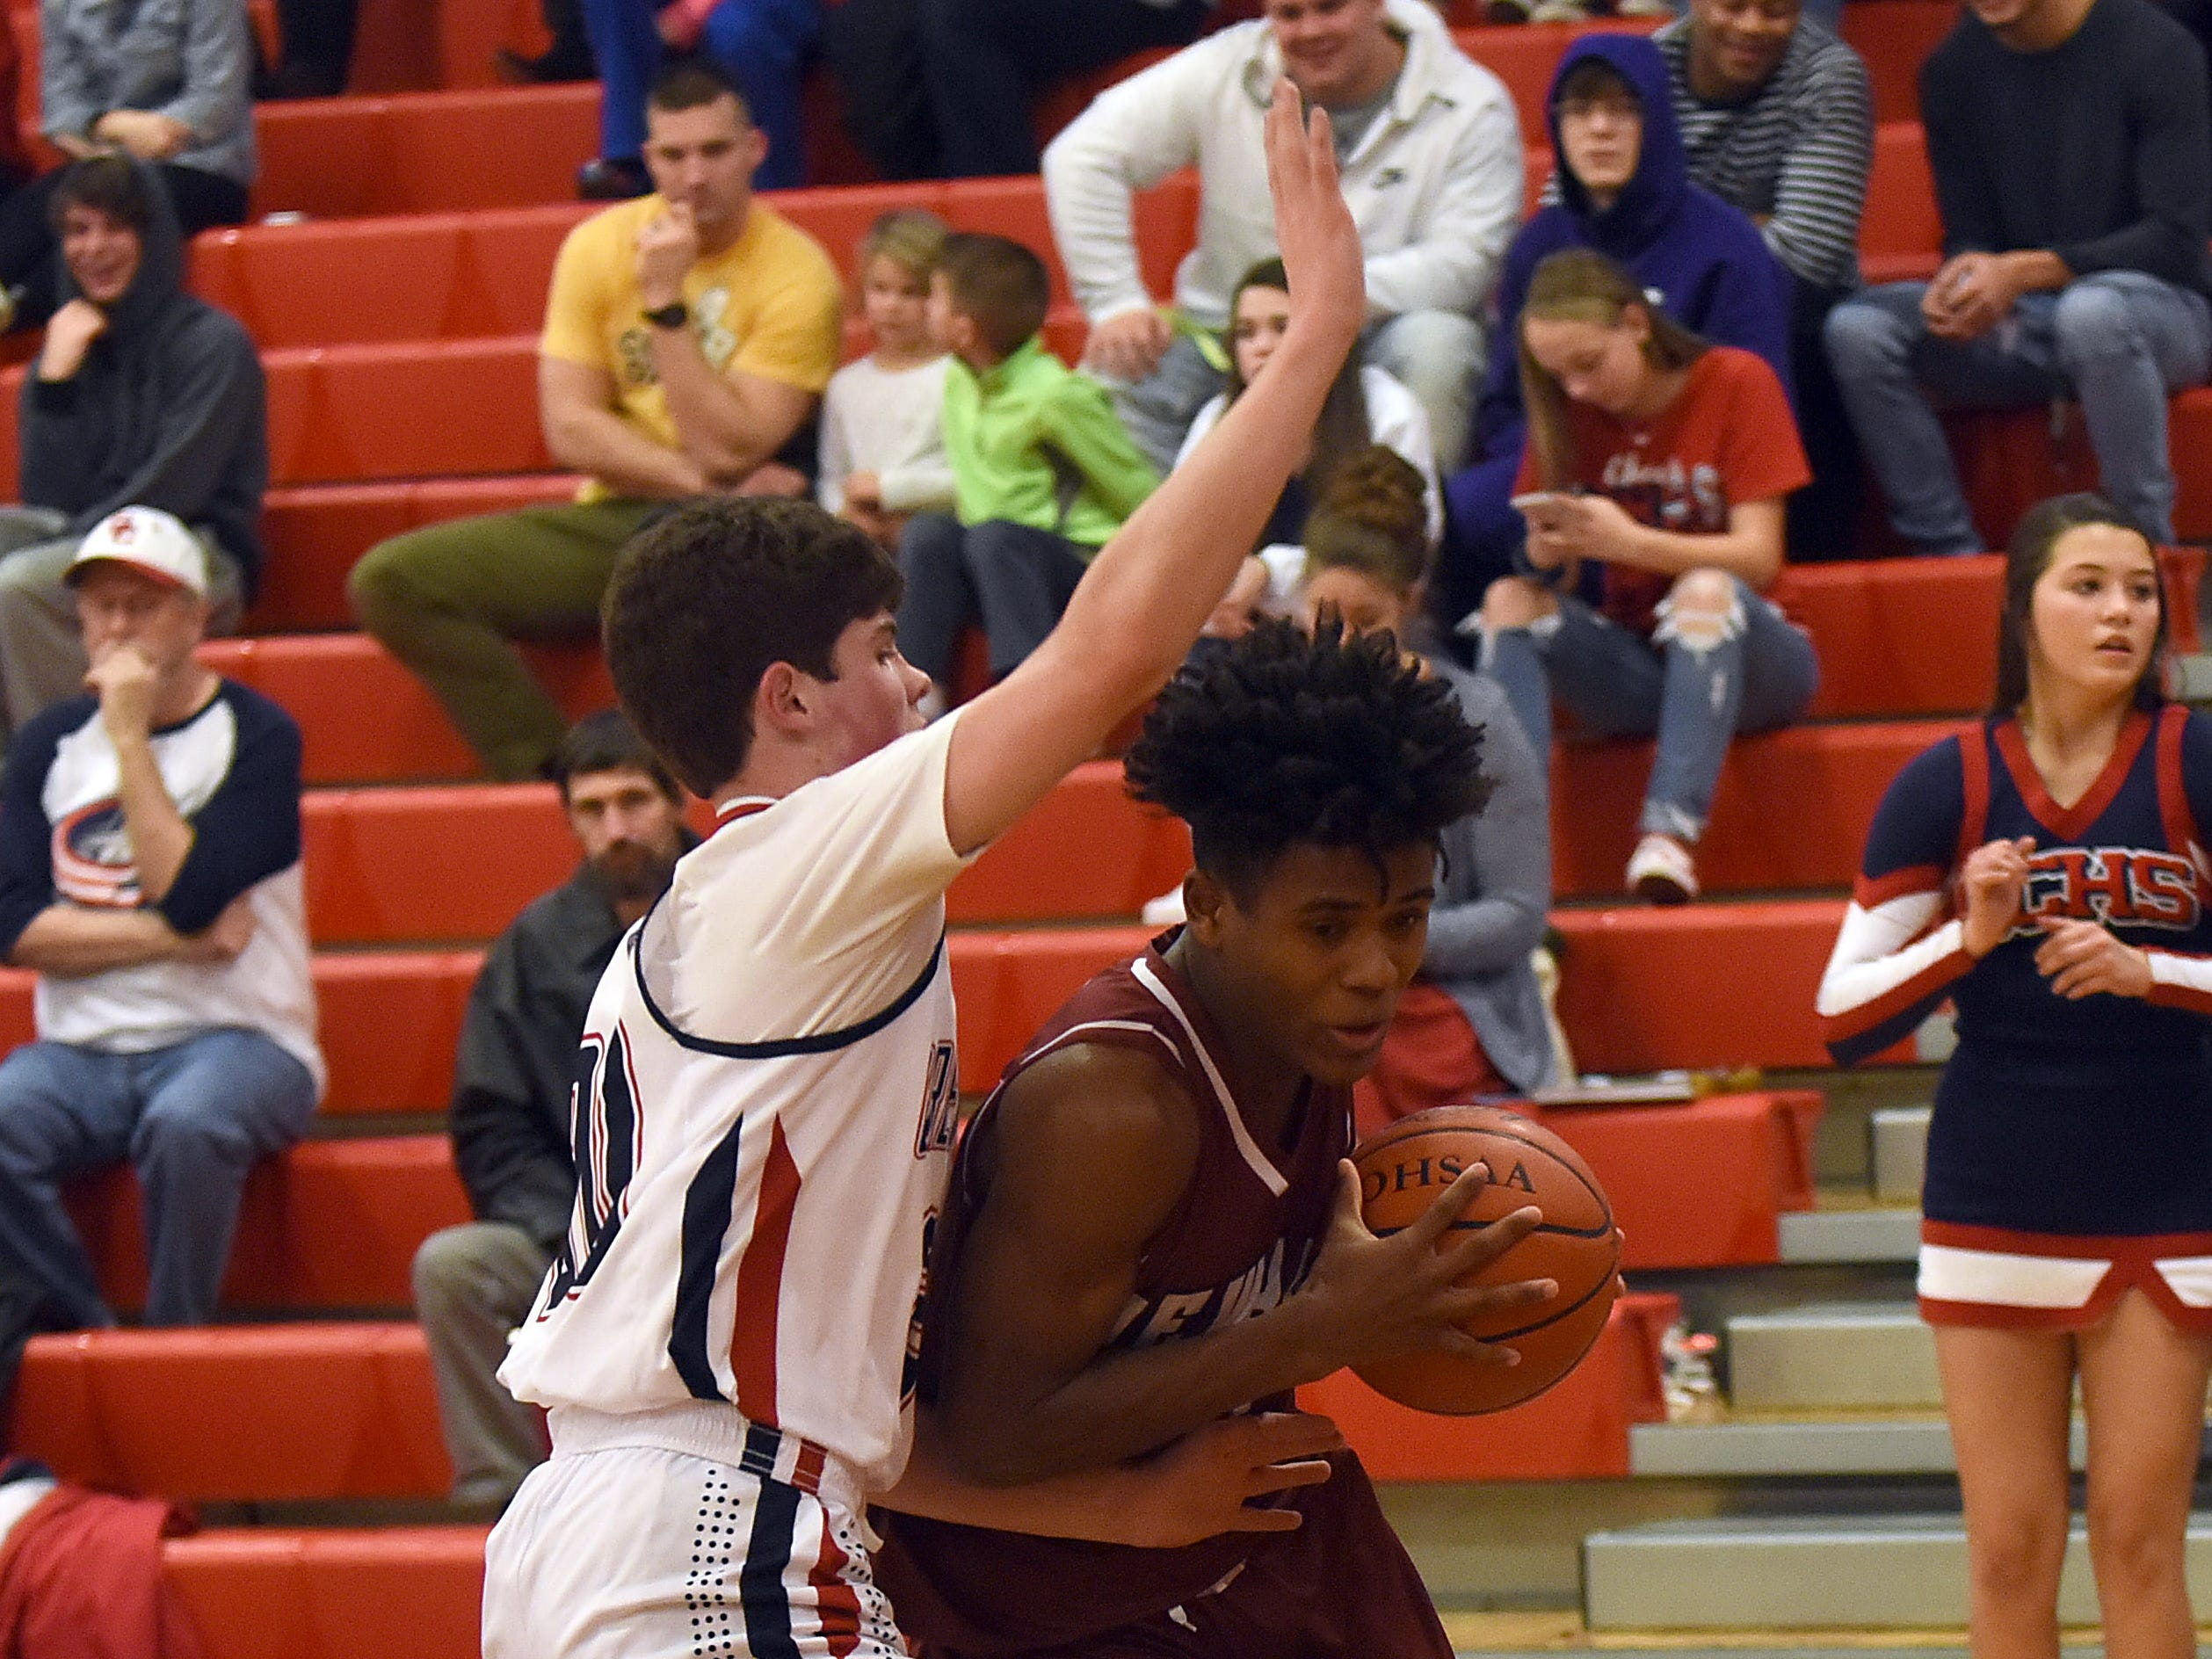 Grove City sophomore Alex Coffey guards Newark junior Bobby Crenshaw during Tuesday night's game at Grove City. The Wildcats won 61-47 on the road.